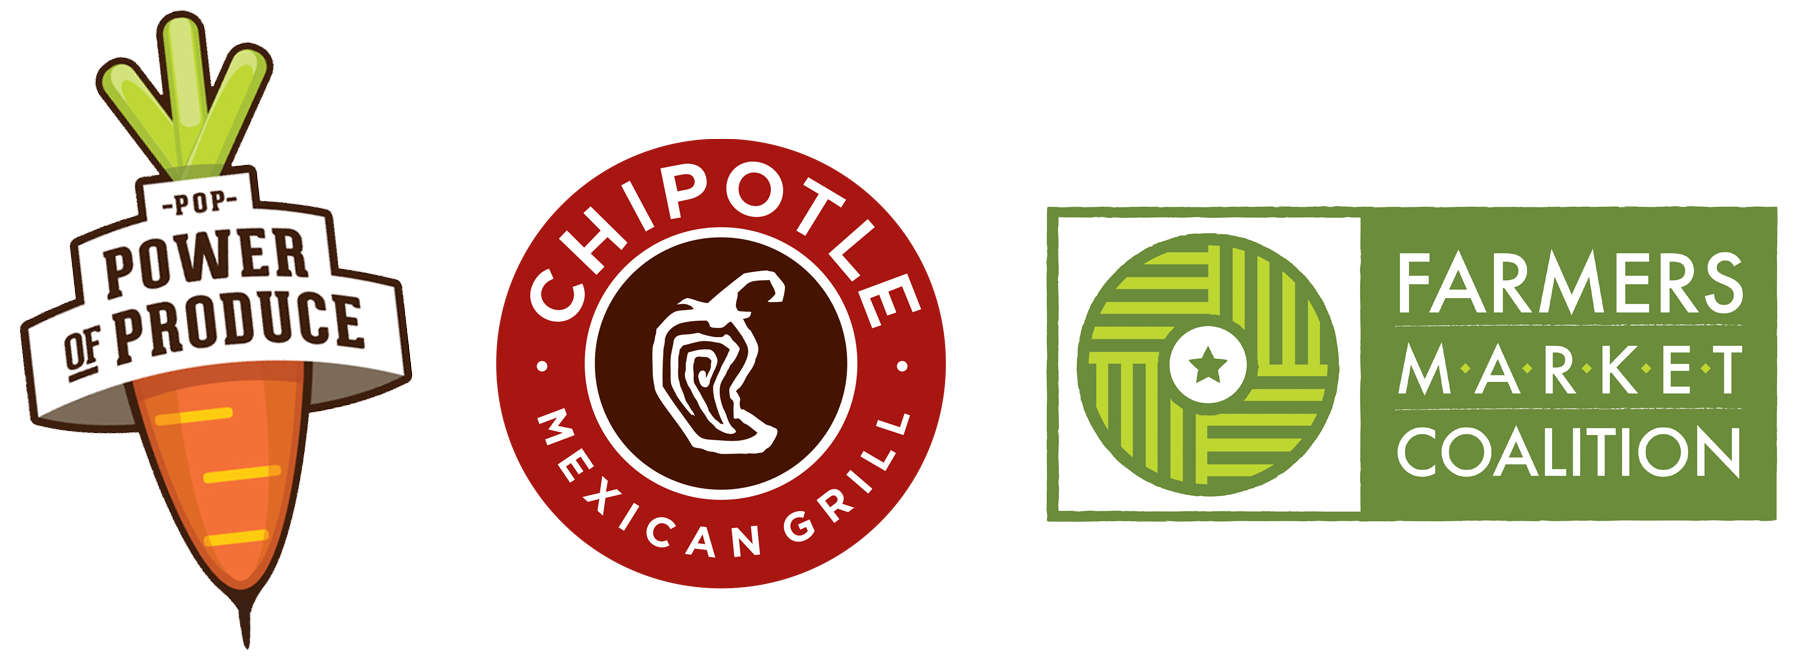 FMC Partners with Chipotle Mexican Grill to Bring the Power of ...